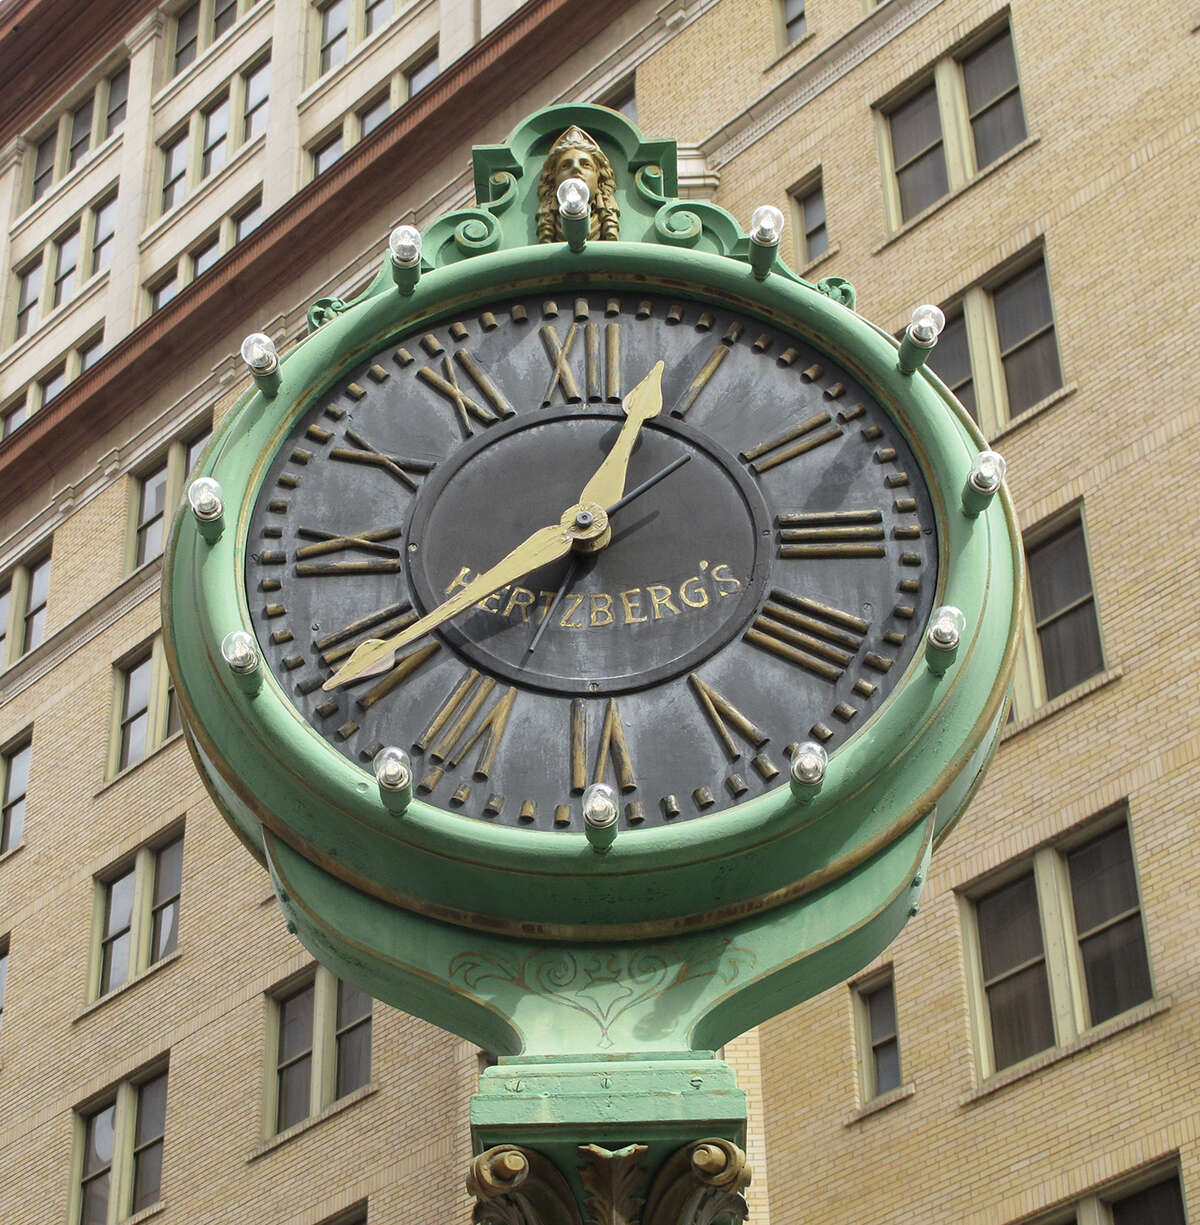 The Hertzberg Clock stands at the corner of Houston and St. Mary's streets. In 1878, Eli Hertzberg installed the clock outside his jewelry shop on Commerce Street. When the shop moved to Houston and St. Mary's streets in 1910, the clock followed.